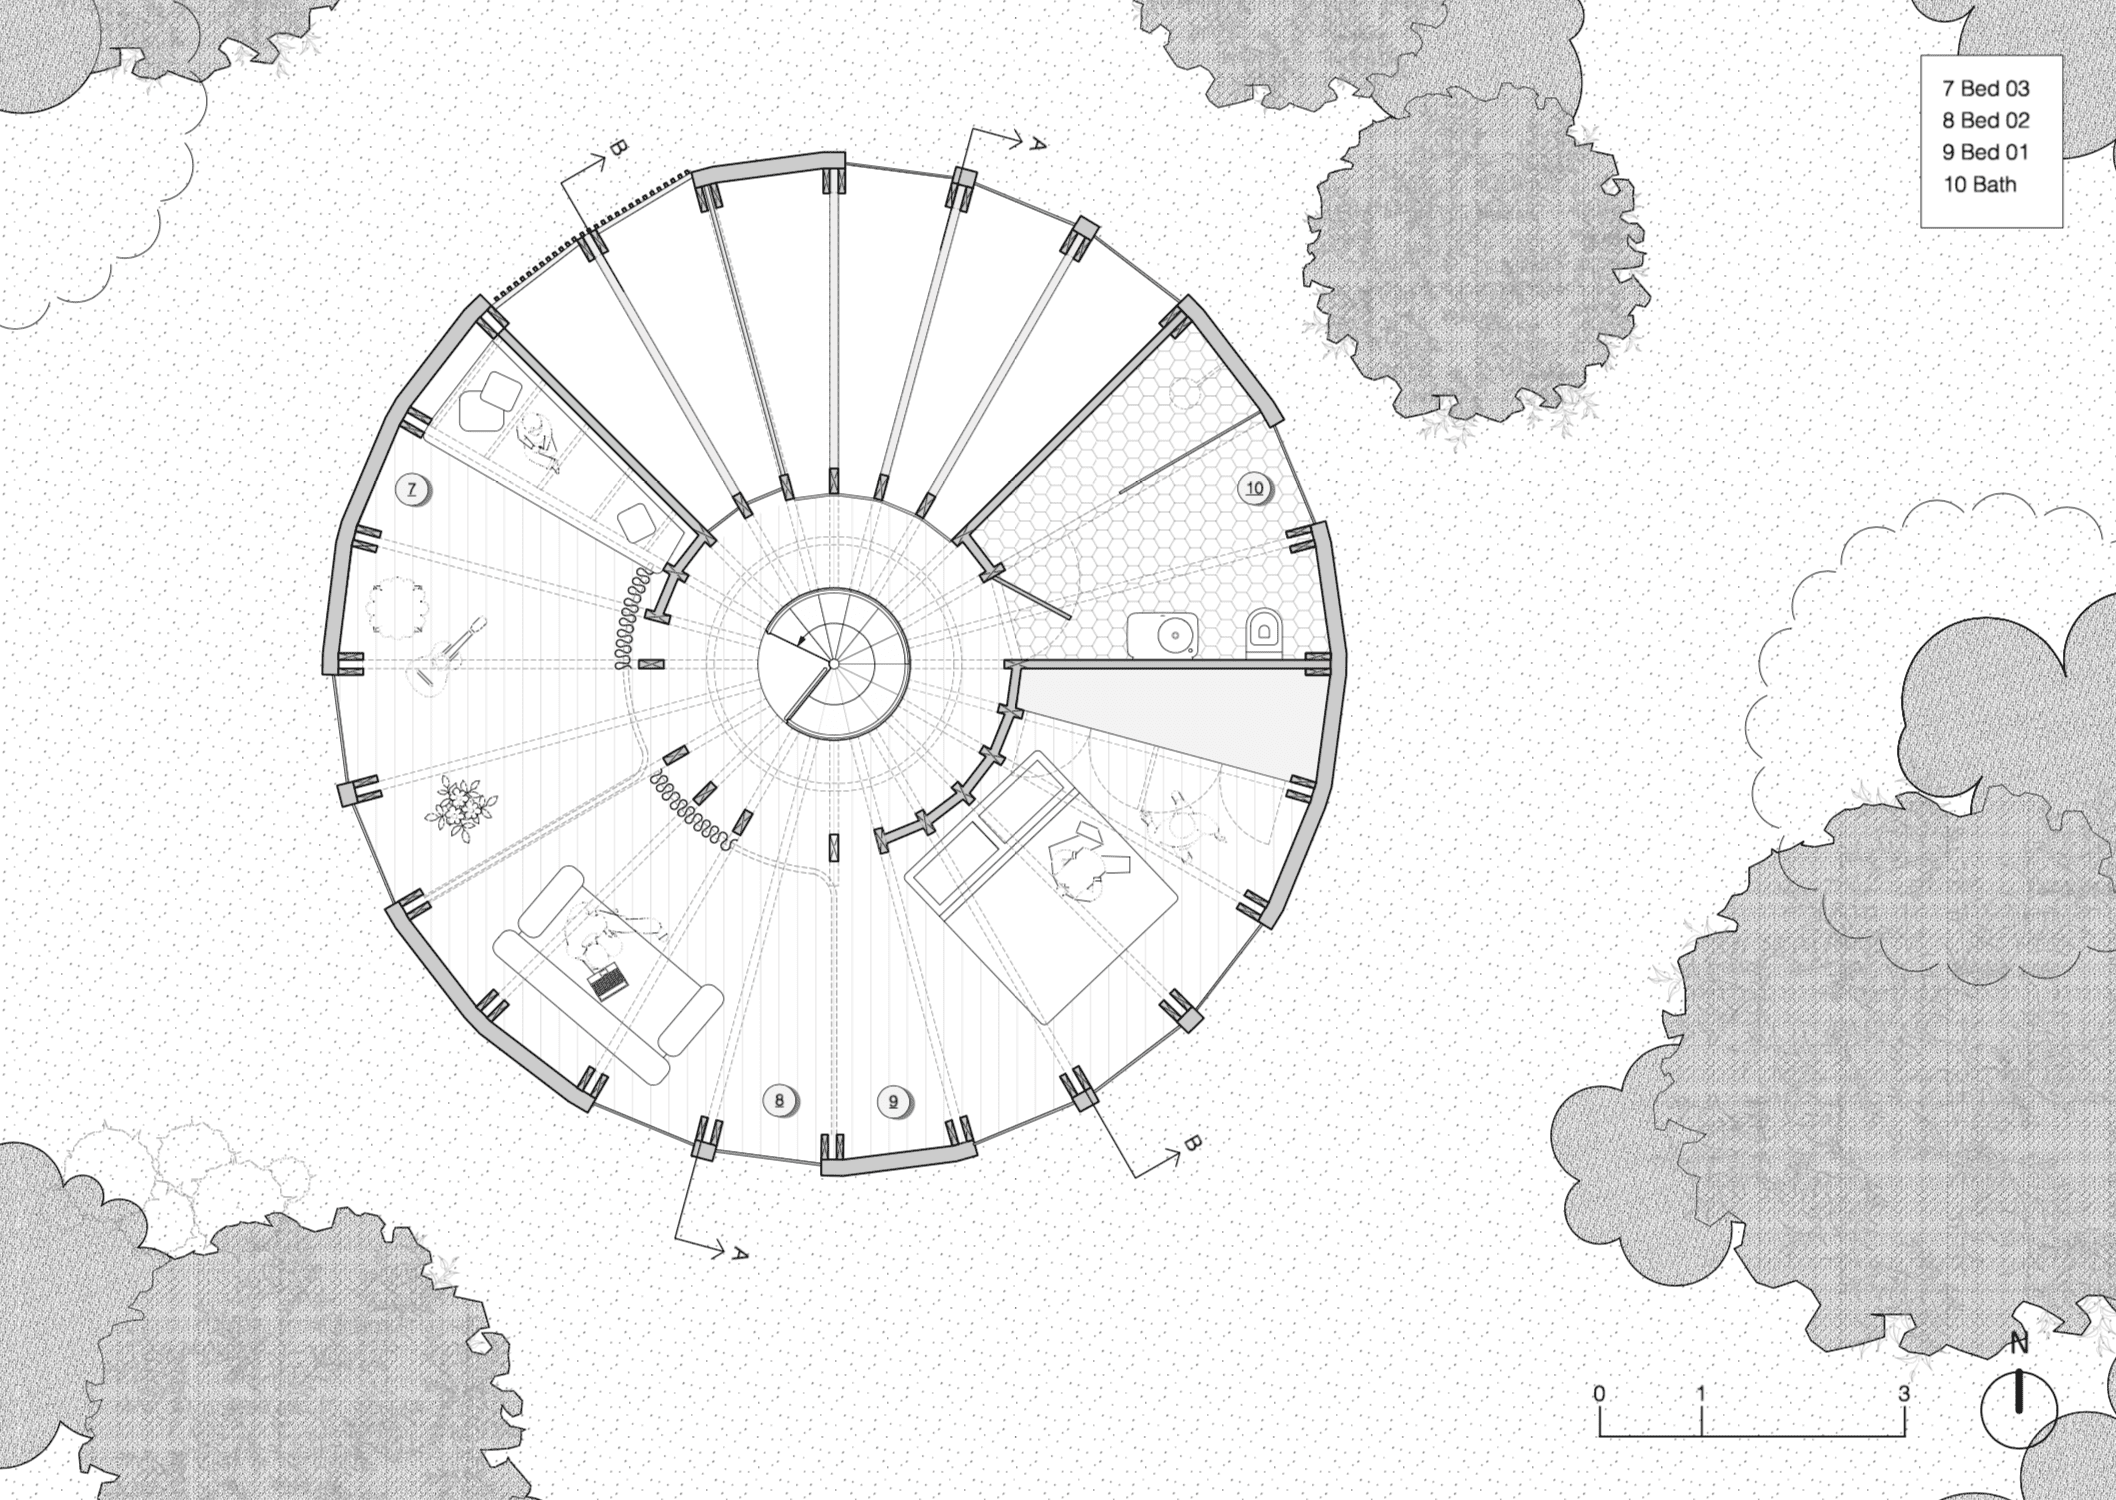 Plan view of lower level